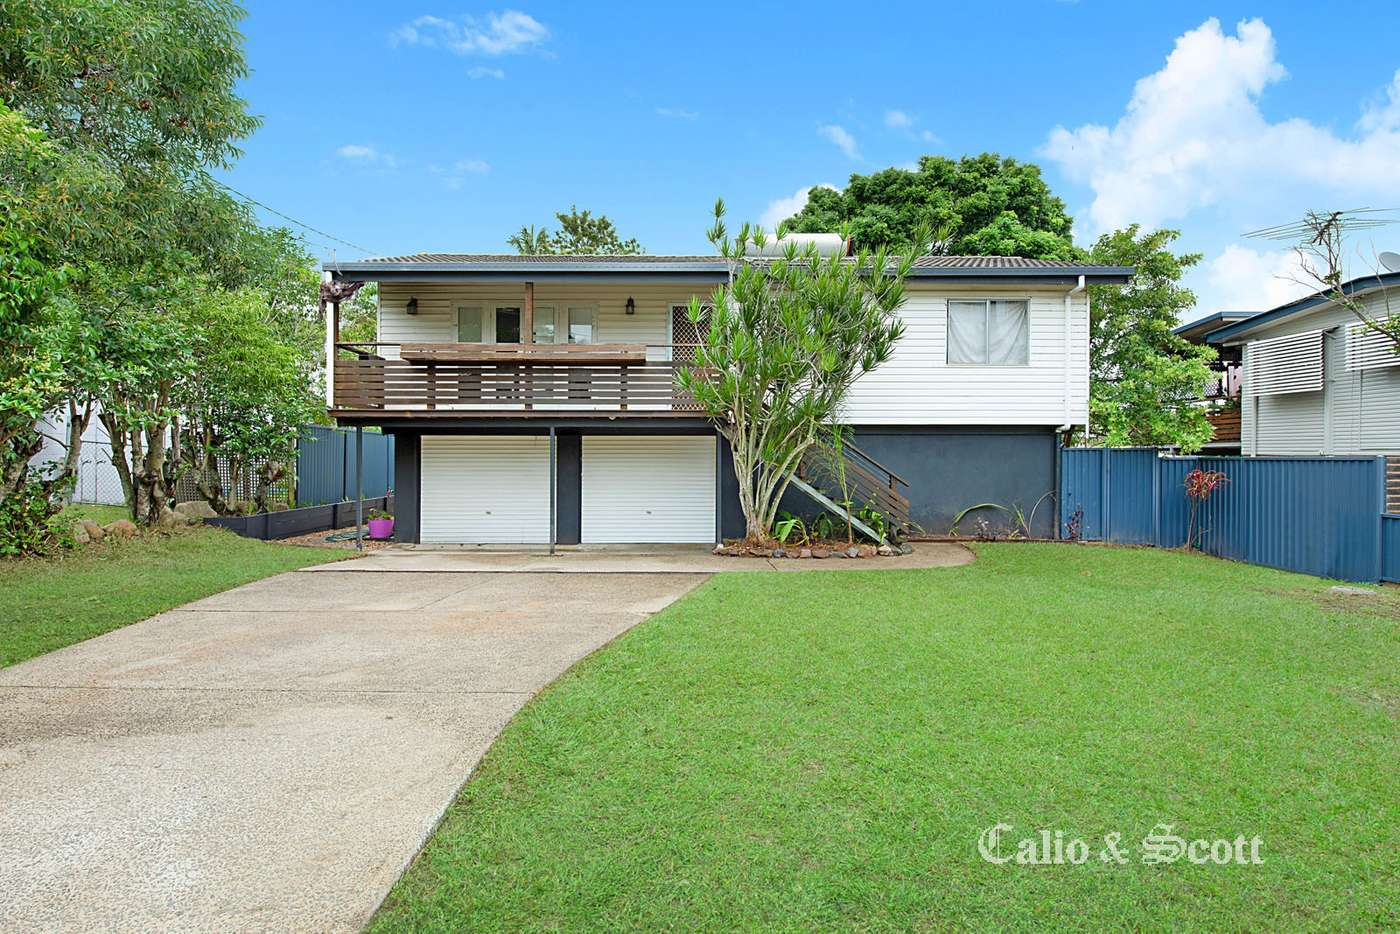 Main view of Homely house listing, 26 Pownall Cres, Margate QLD 4019